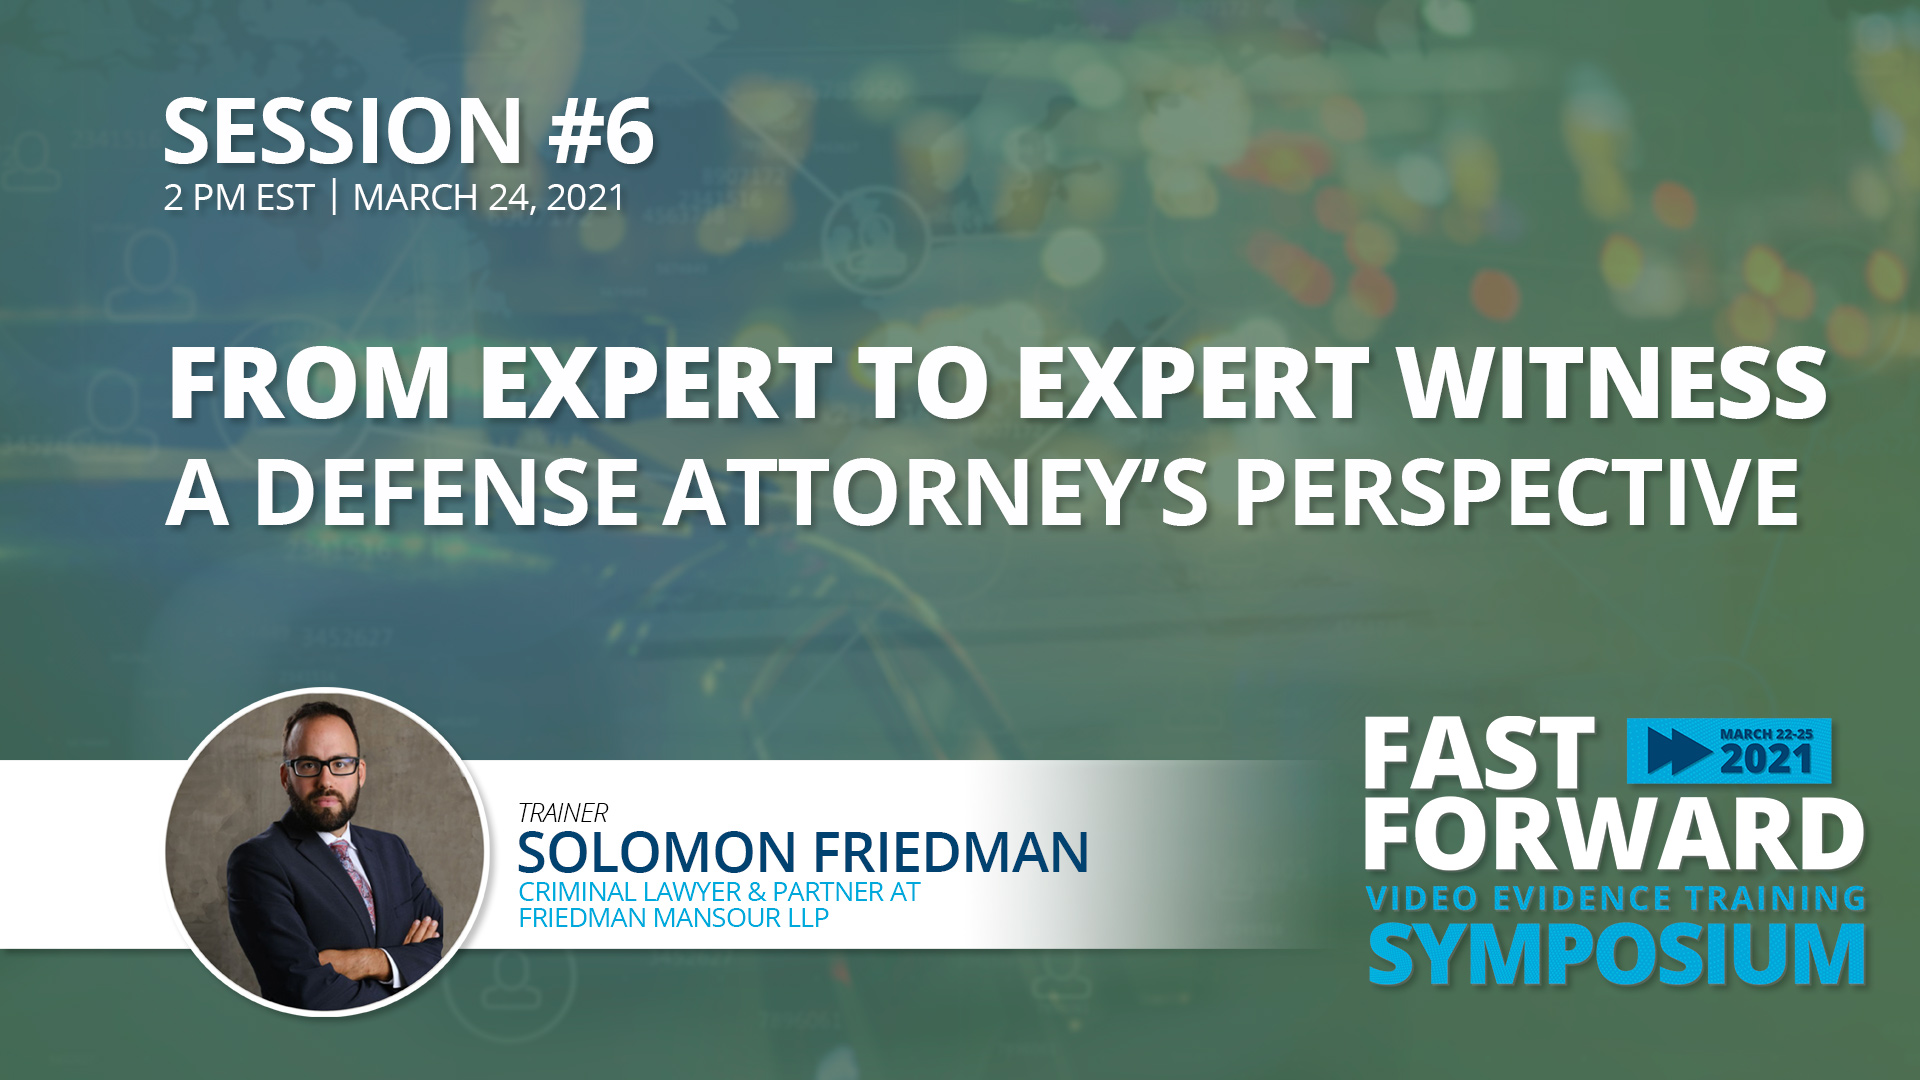 From Expert to Expert Witness: A Defense Attorney's Perspective